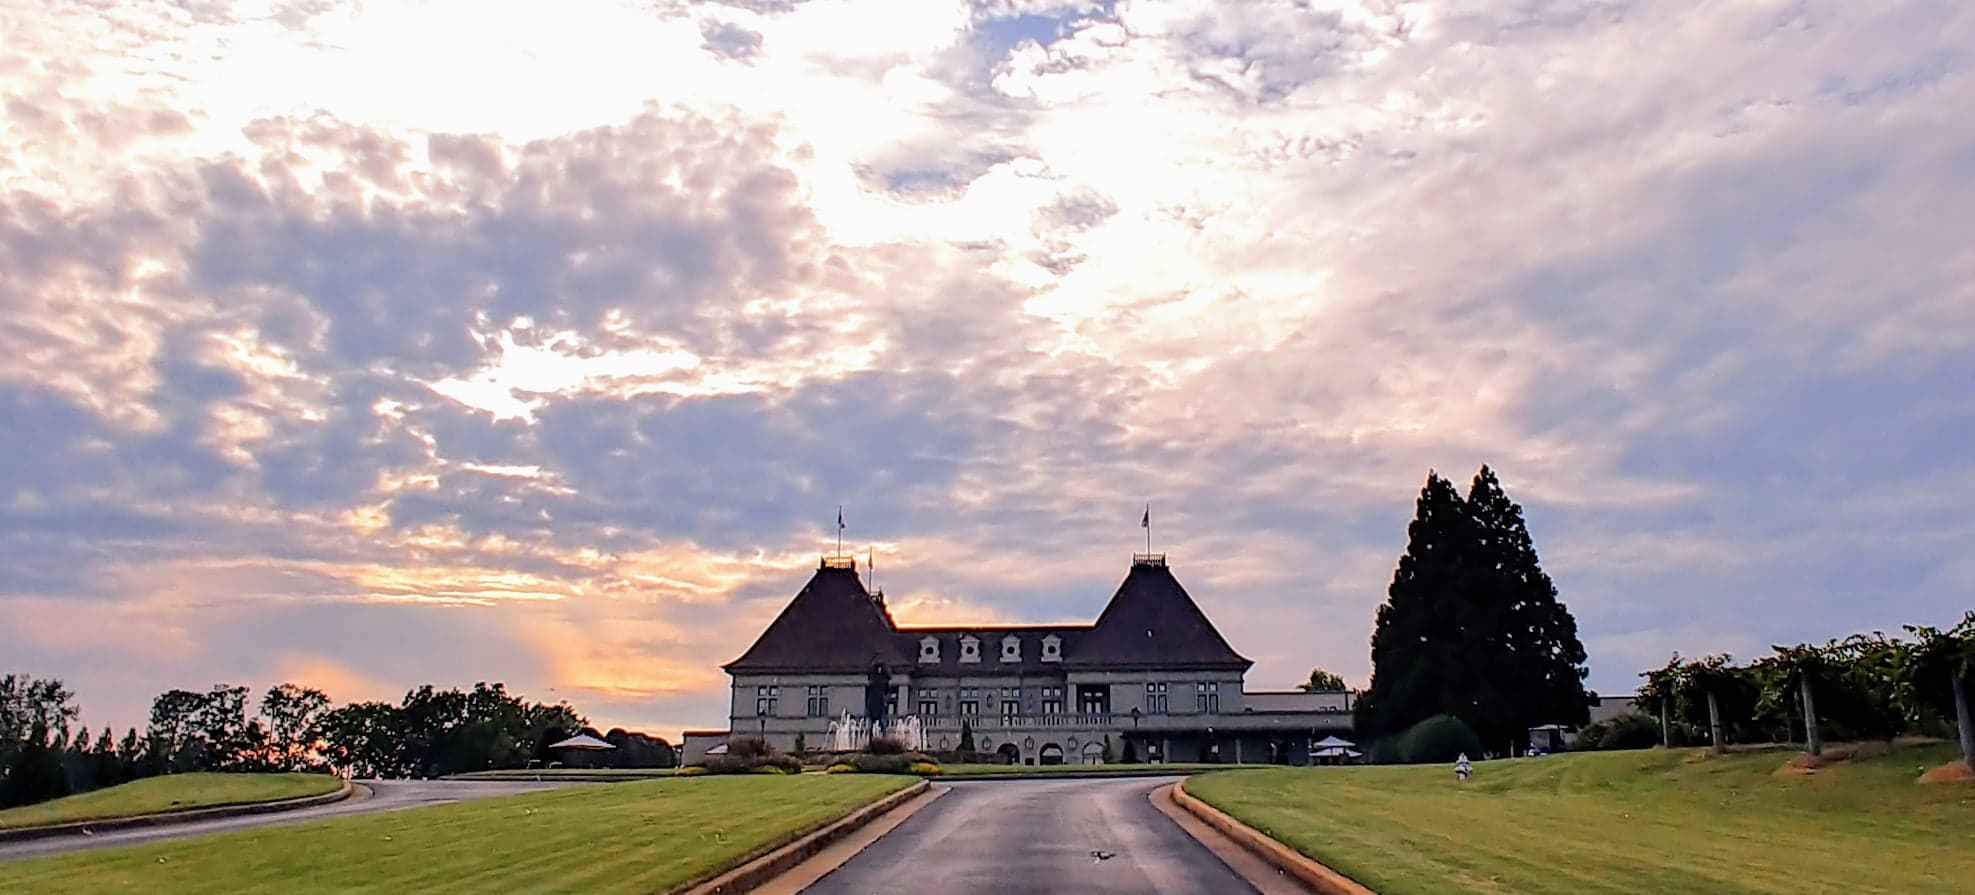 Chateau-Elan-Sunset-at-Winery-2020-09-23